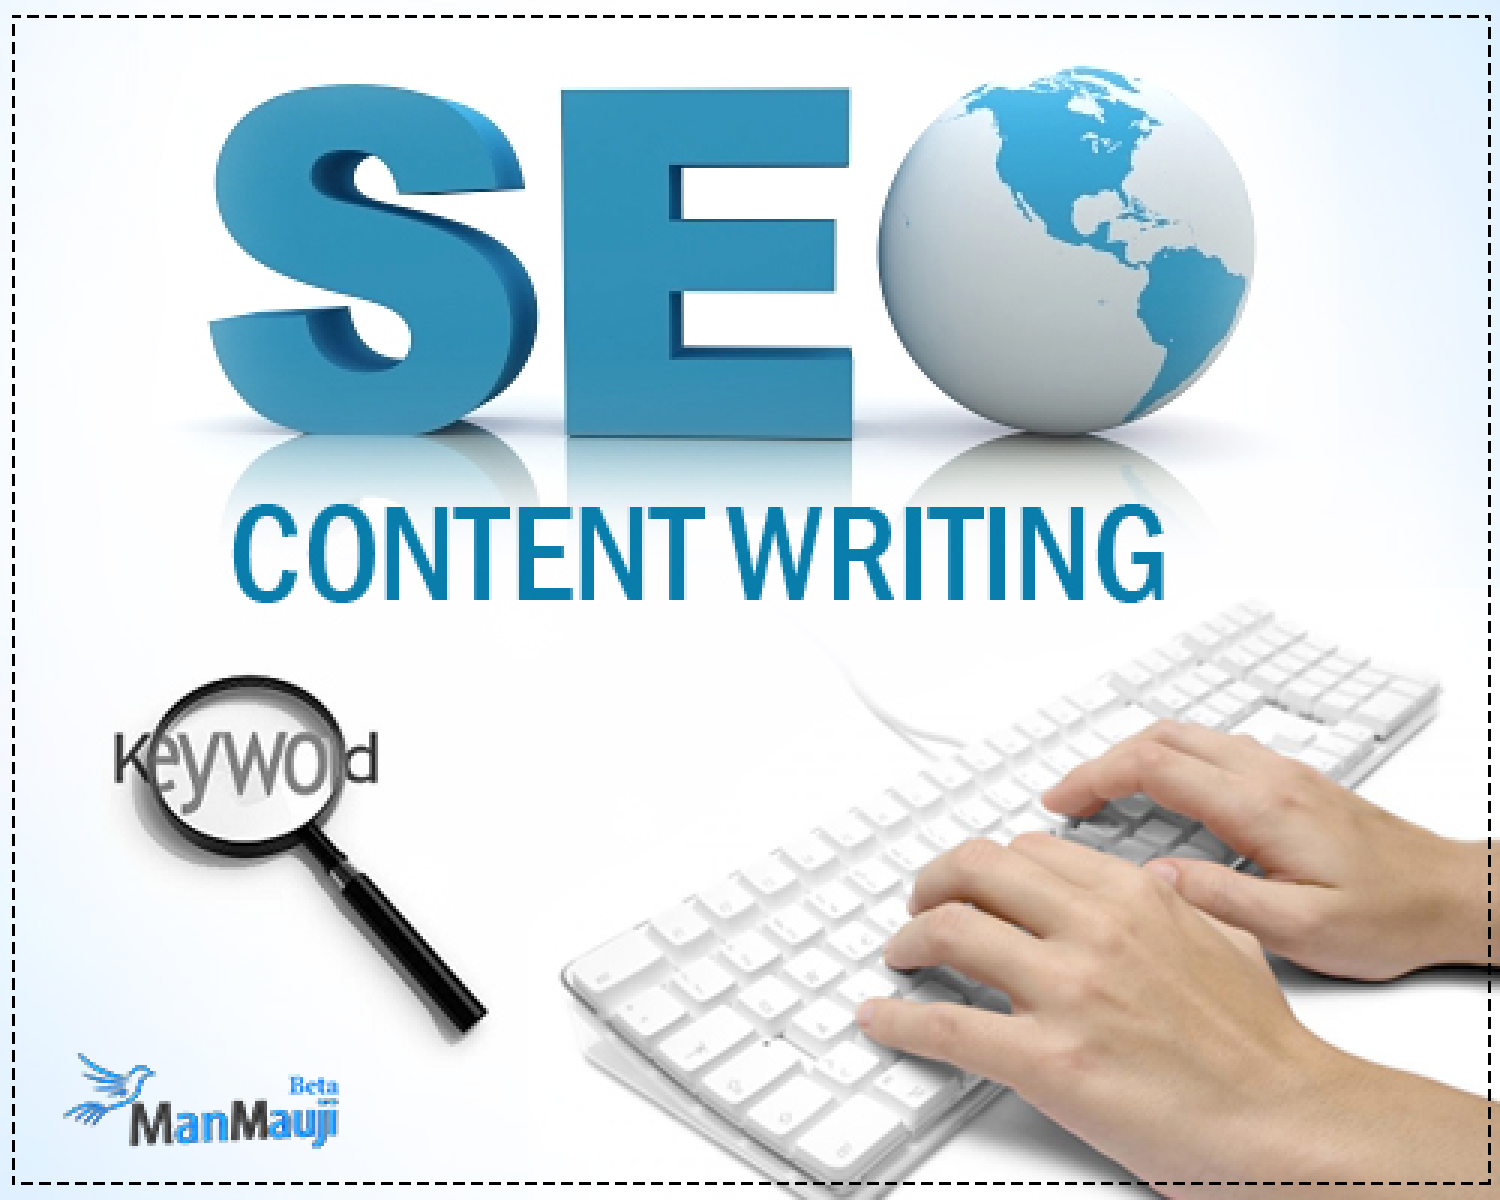 Content Writing Service Infographic